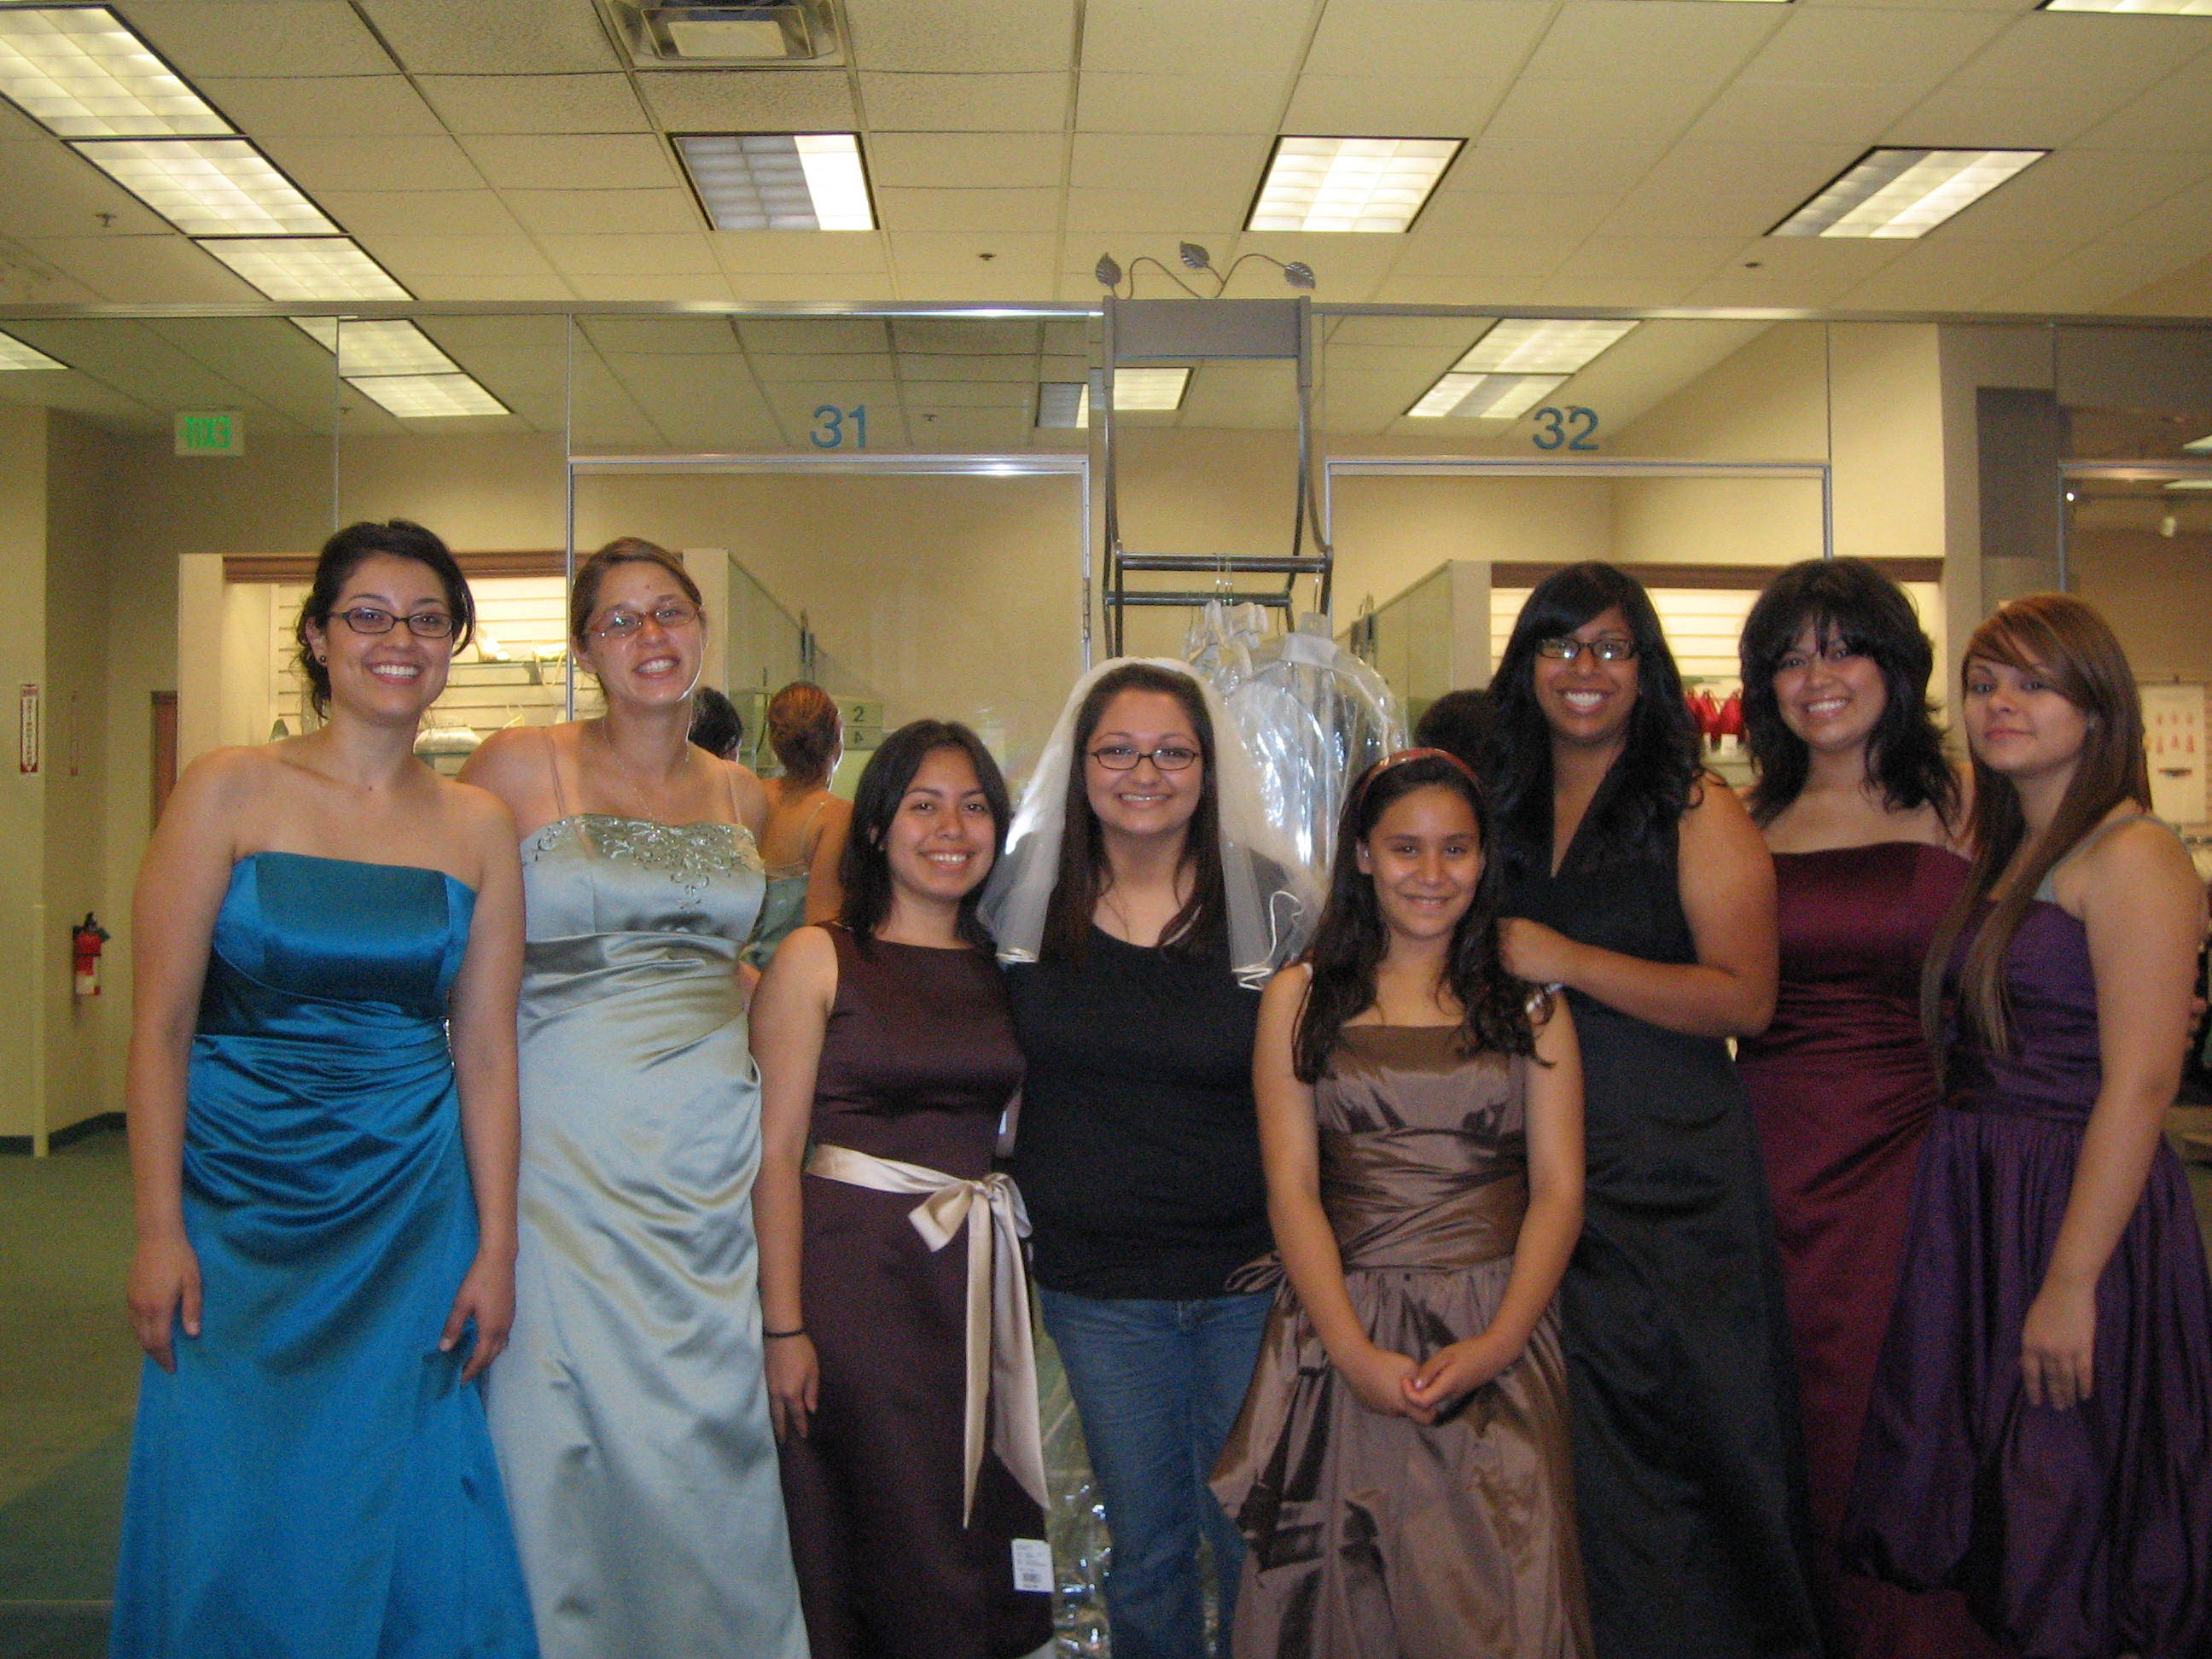 Bridesmaid, Dreses